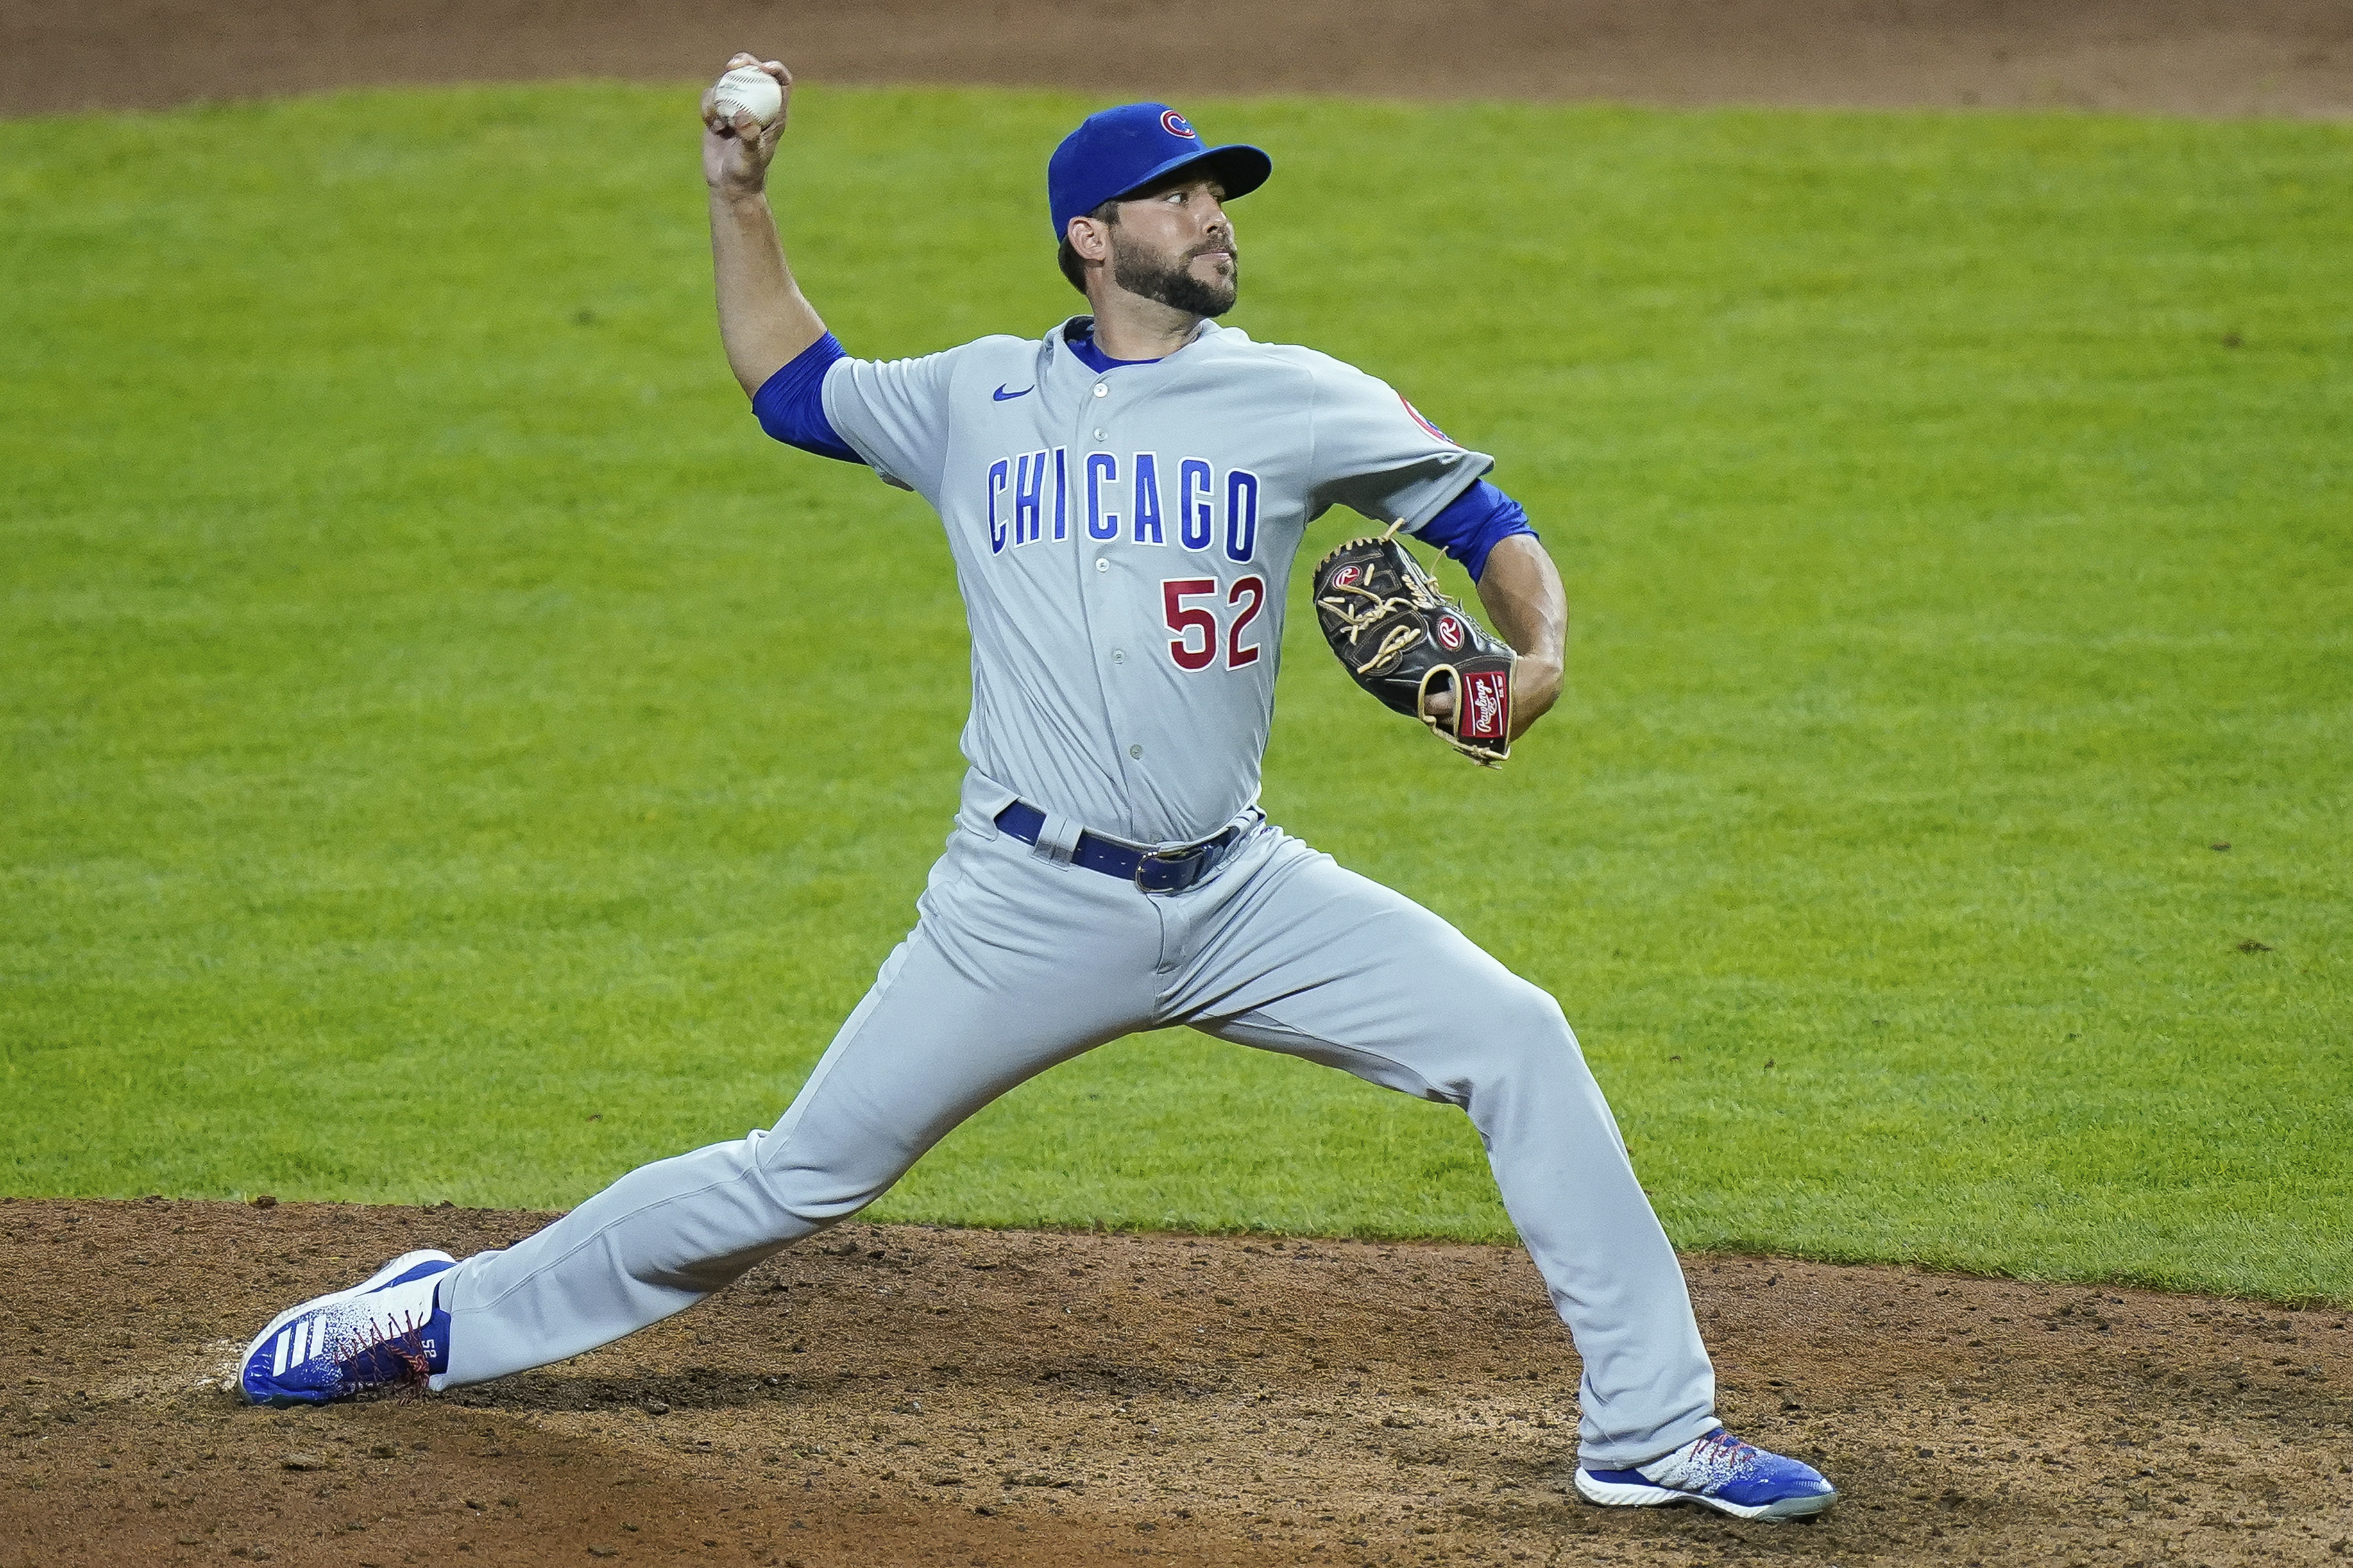 The Cubs will re-sign right-hander Ryan Tepera to a one-year, $800,000 deal.